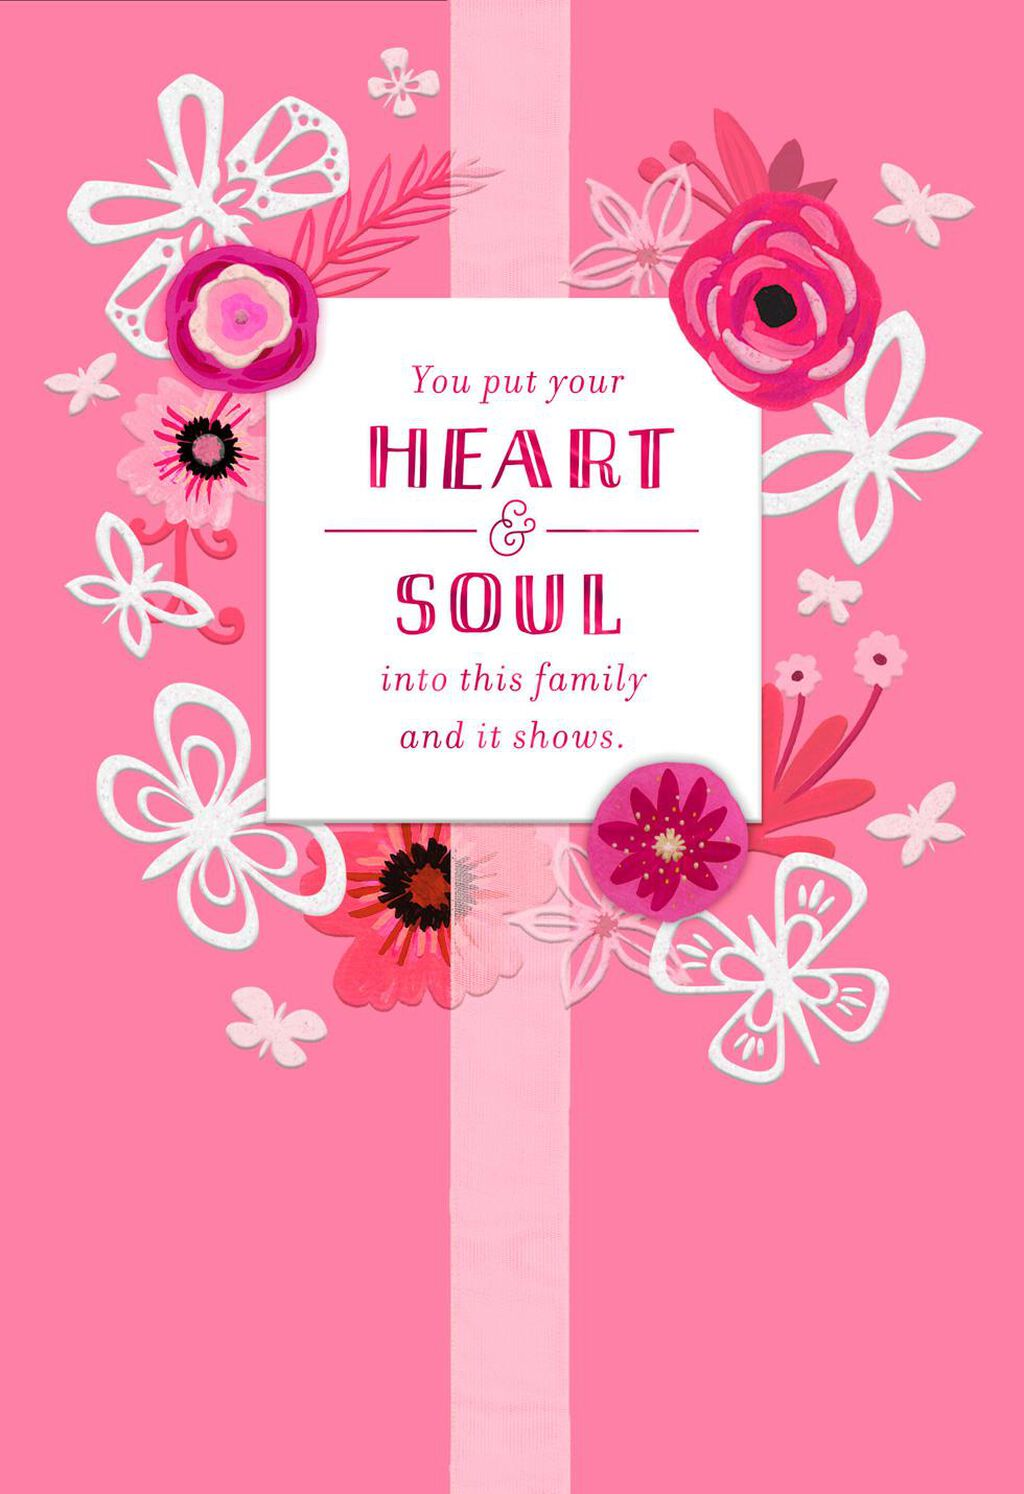 Heart and Soul Mother\'s Day Card From Husband - Greeting Cards ...